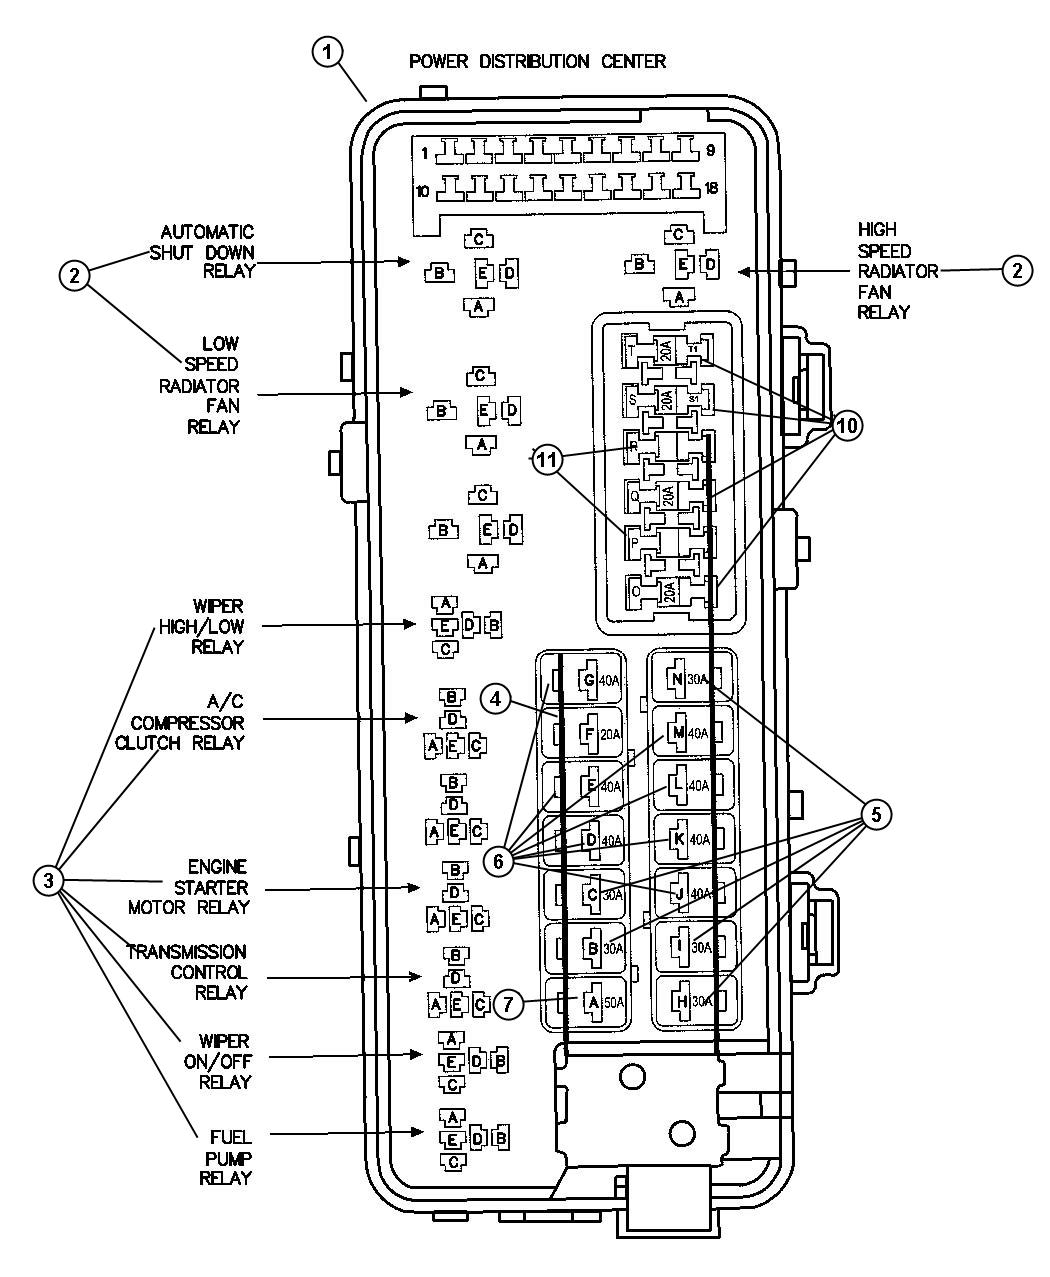 fuse box for chrysler concorde wiring diagram database. Black Bedroom Furniture Sets. Home Design Ideas